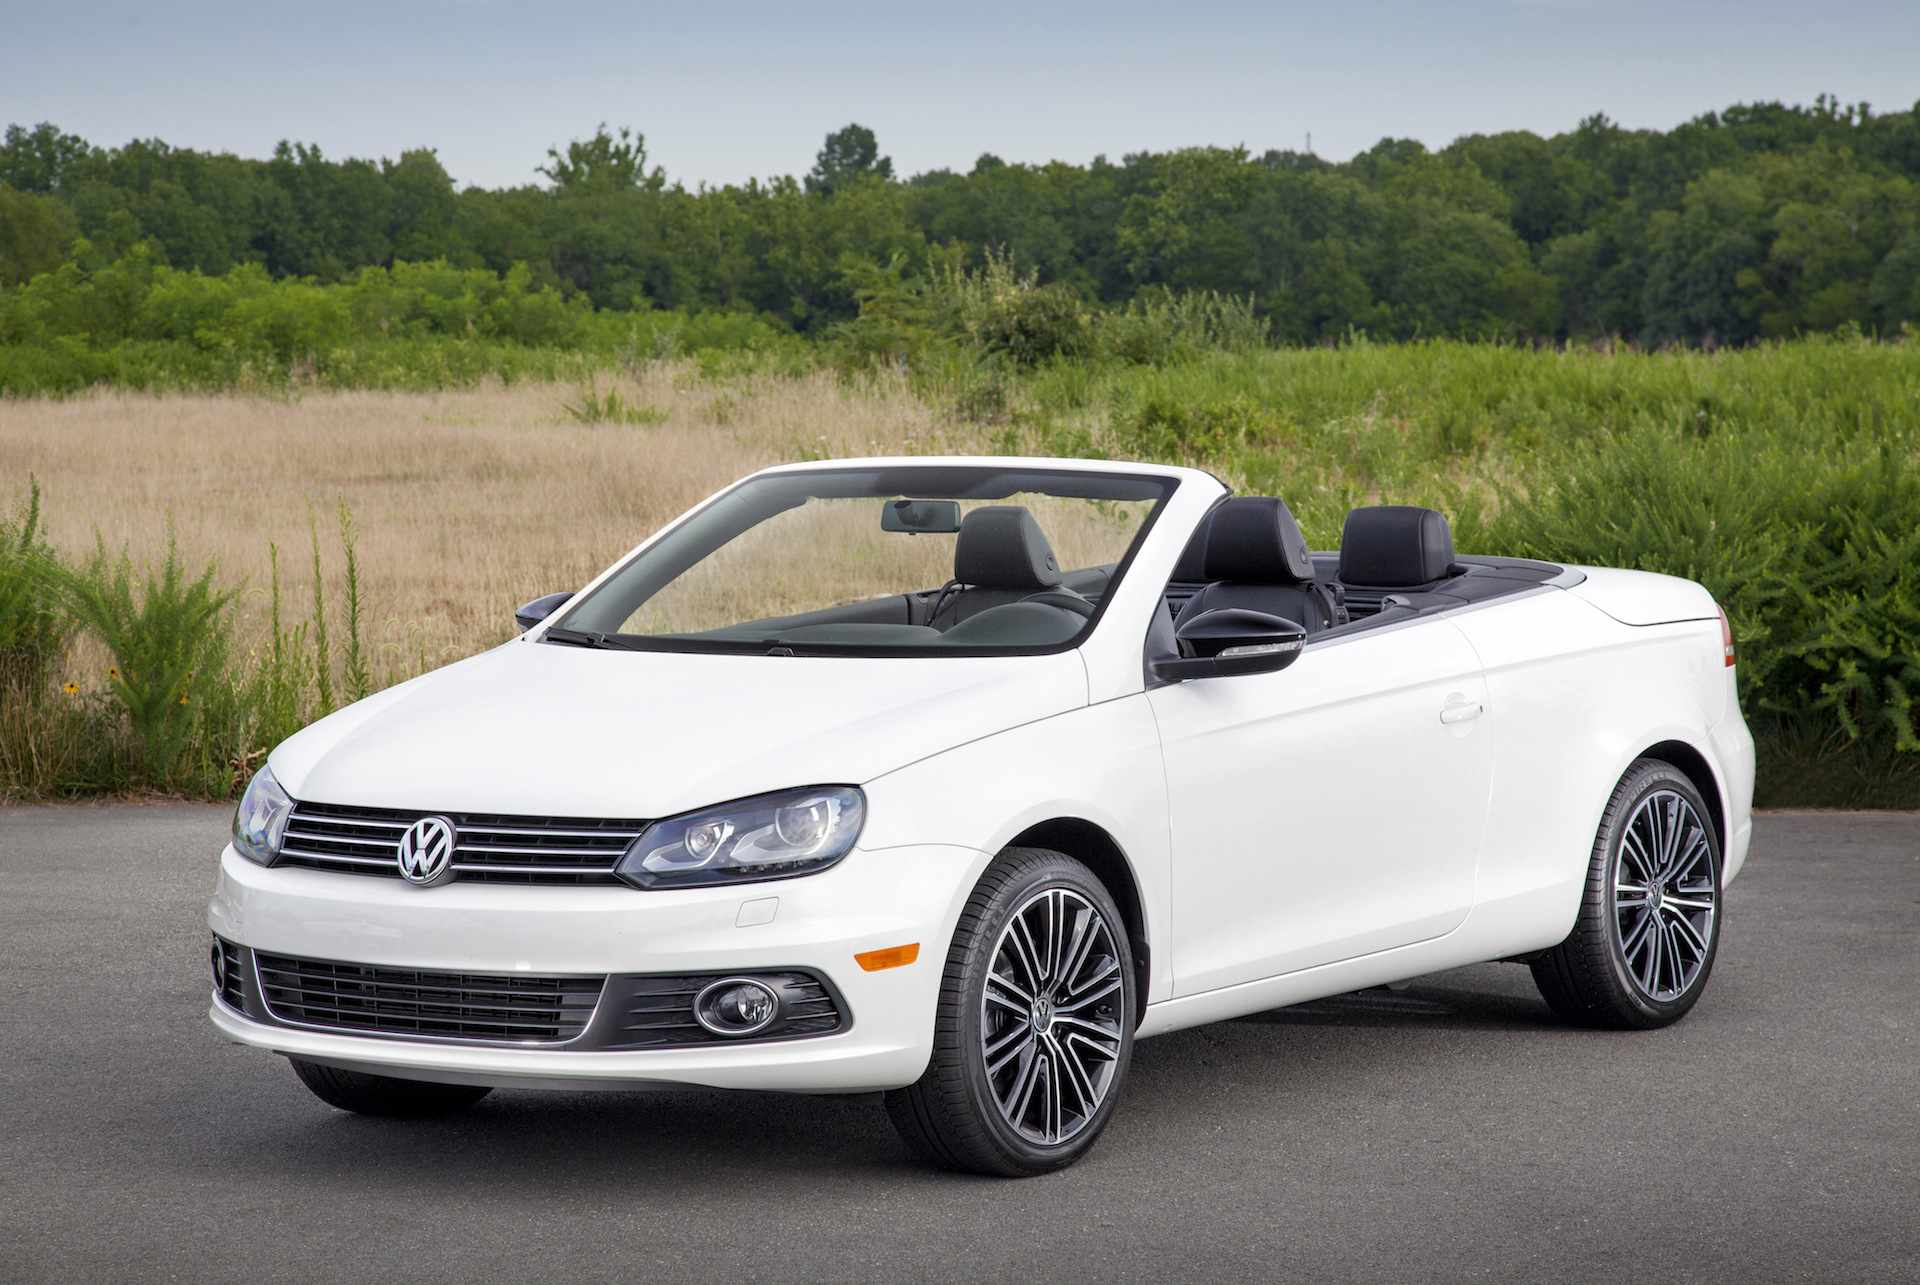 2016 volkswagen eos vw review ratings specs prices and photos the car connection. Black Bedroom Furniture Sets. Home Design Ideas